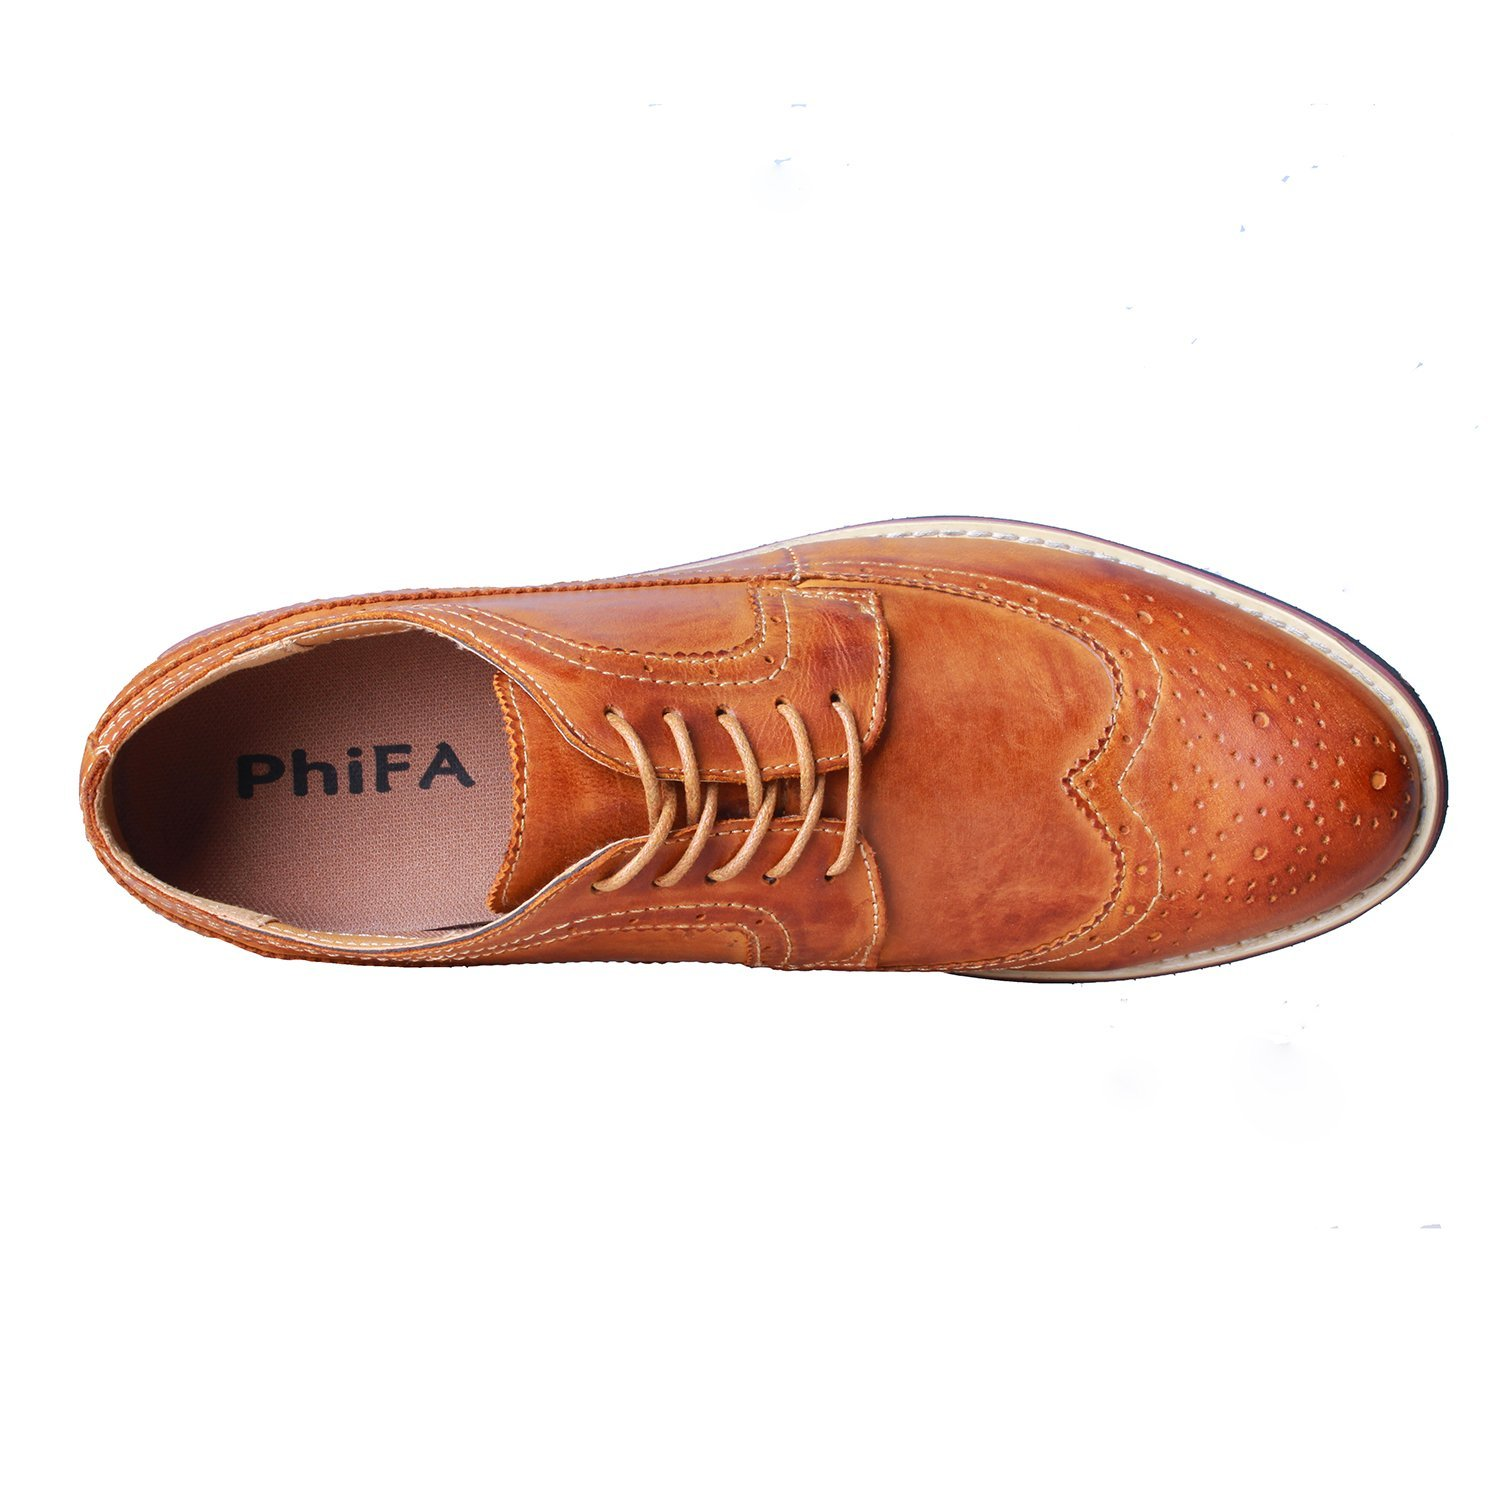 PhiFA Men's Classic Leather Oxfords Wingtips Dress Shoes Lace-up US Size 11 Brown by PhiFA (Image #4)